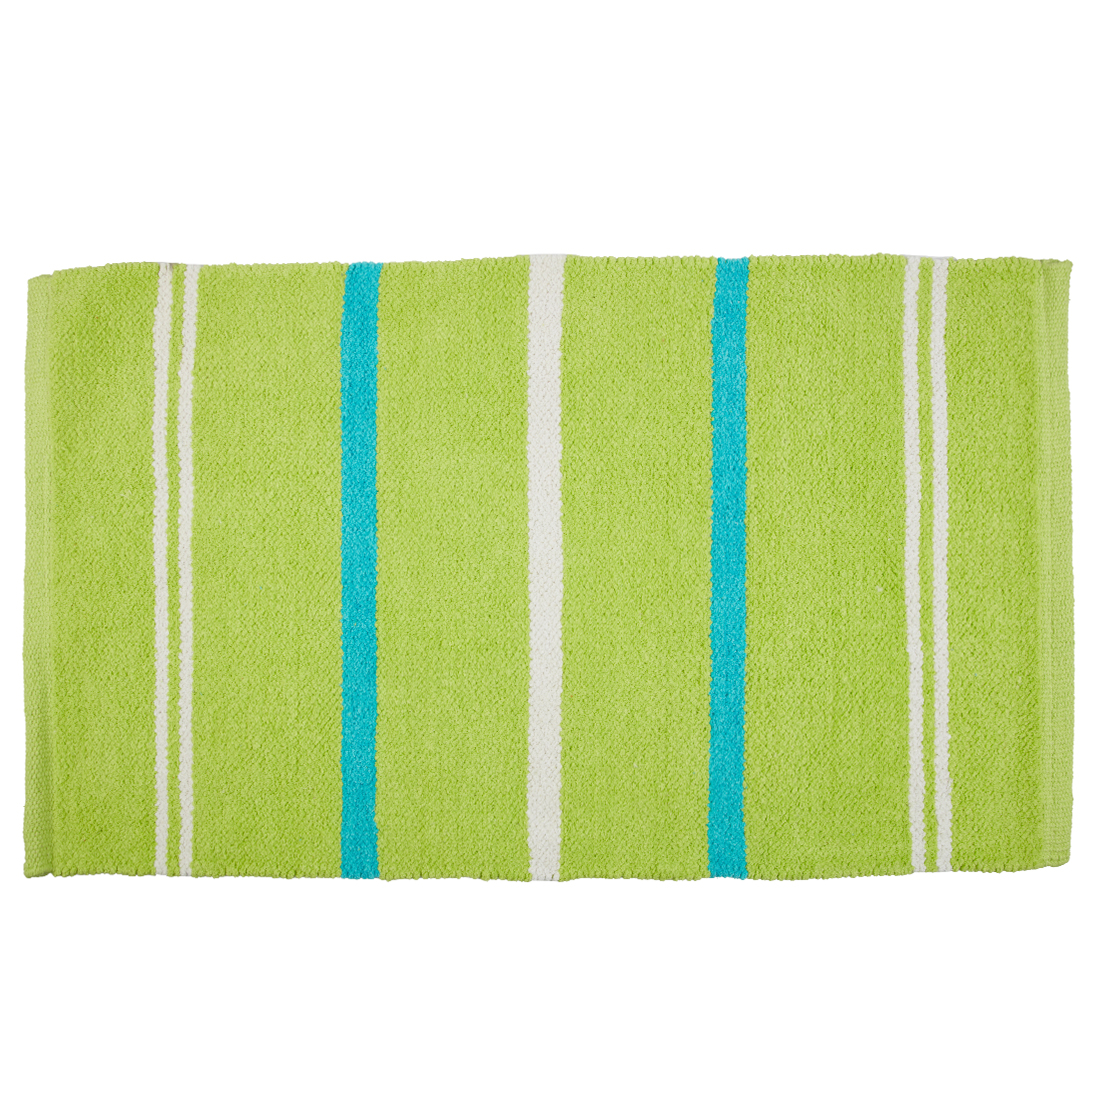 Emilia Dhurrie Green Chenille Bath Mats in Green Colour by Living Essence